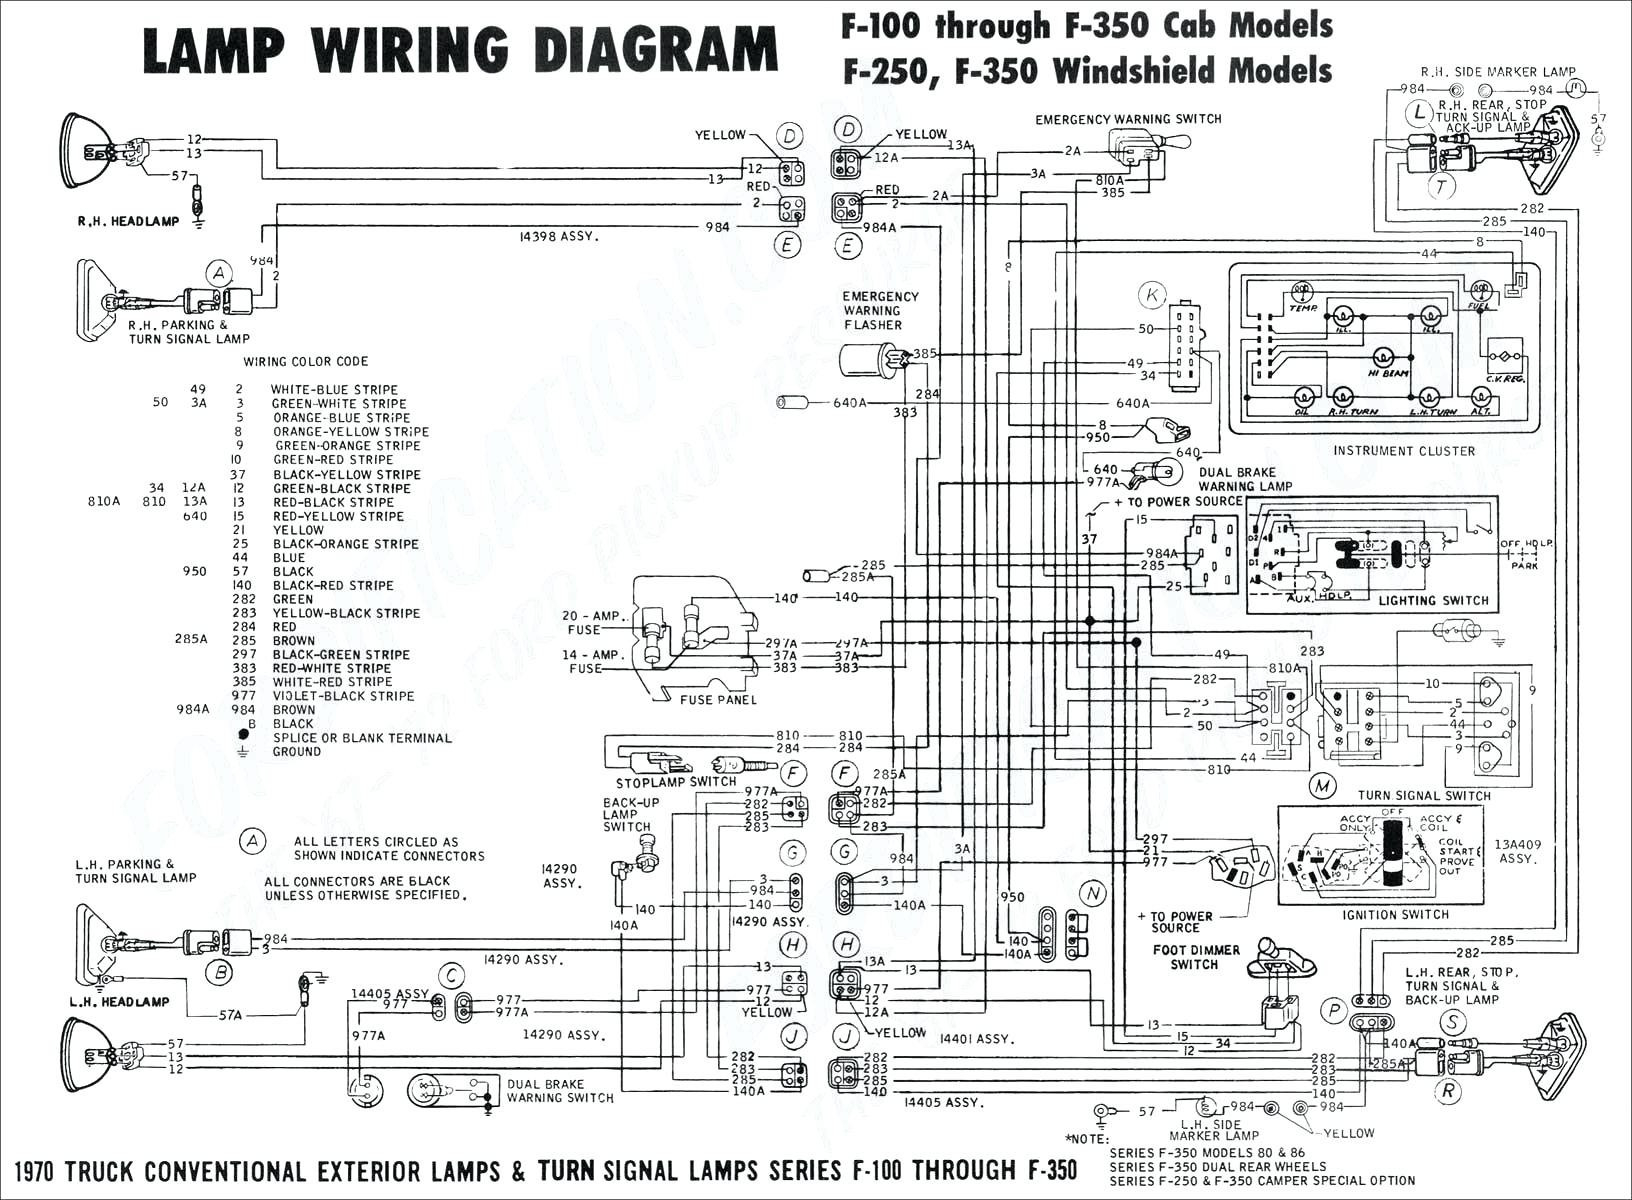 79 Ford F150 Headlight Switch Wiring Diagram - Wiring ... Ford F Headlight Switch Wiring Diagram on chevy silverado headlight wiring diagram, dodge ram 3500 headlight wiring diagram, chevy s10 headlight wiring diagram,